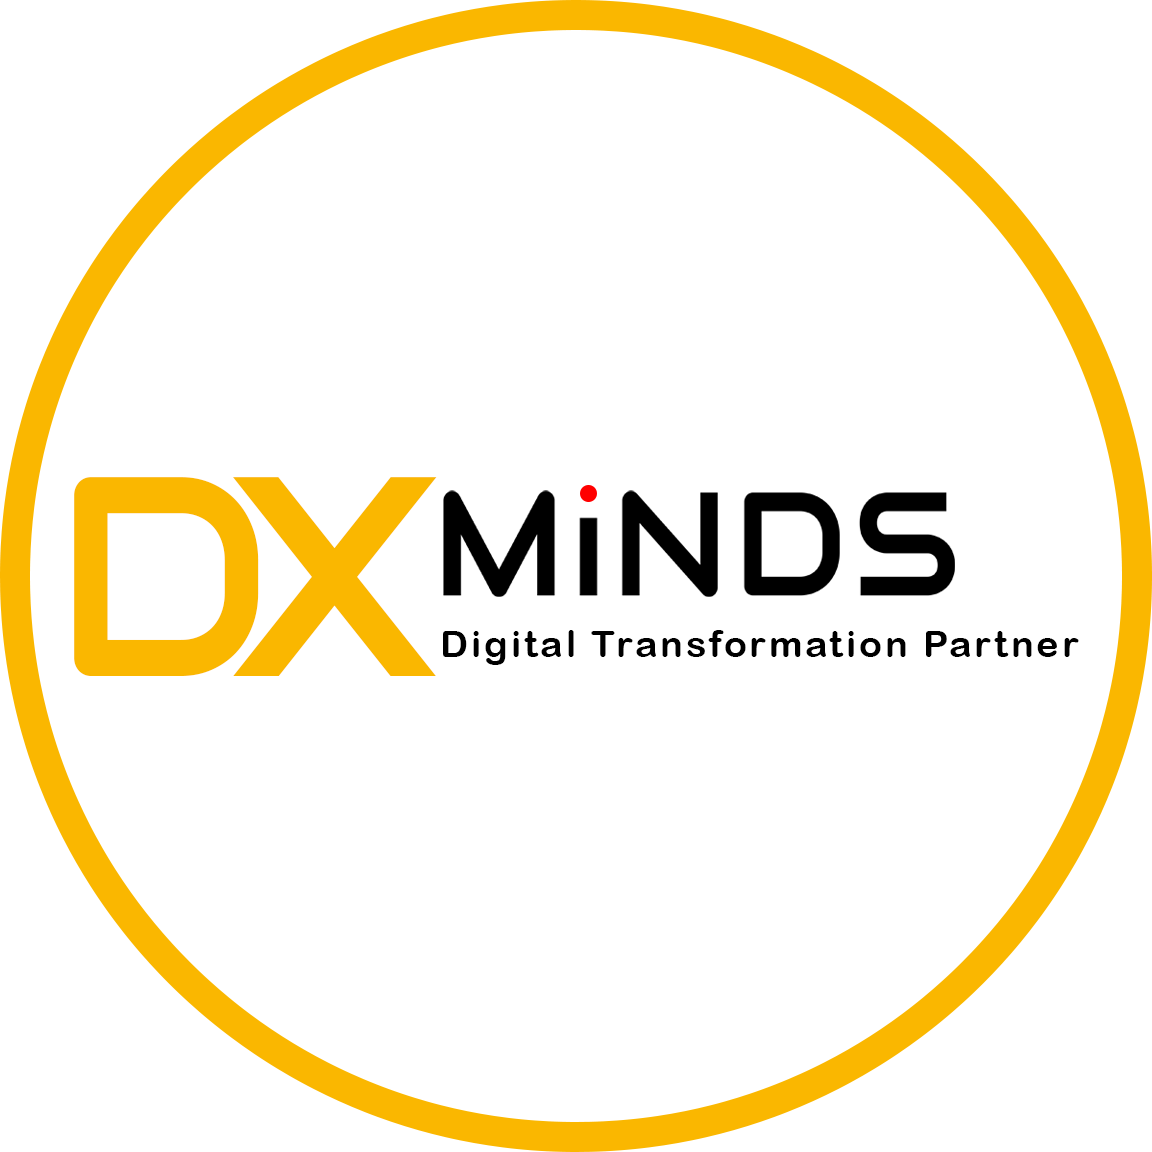 DxMinds Innovation Labs Pvt Ltd, a chatbot developer